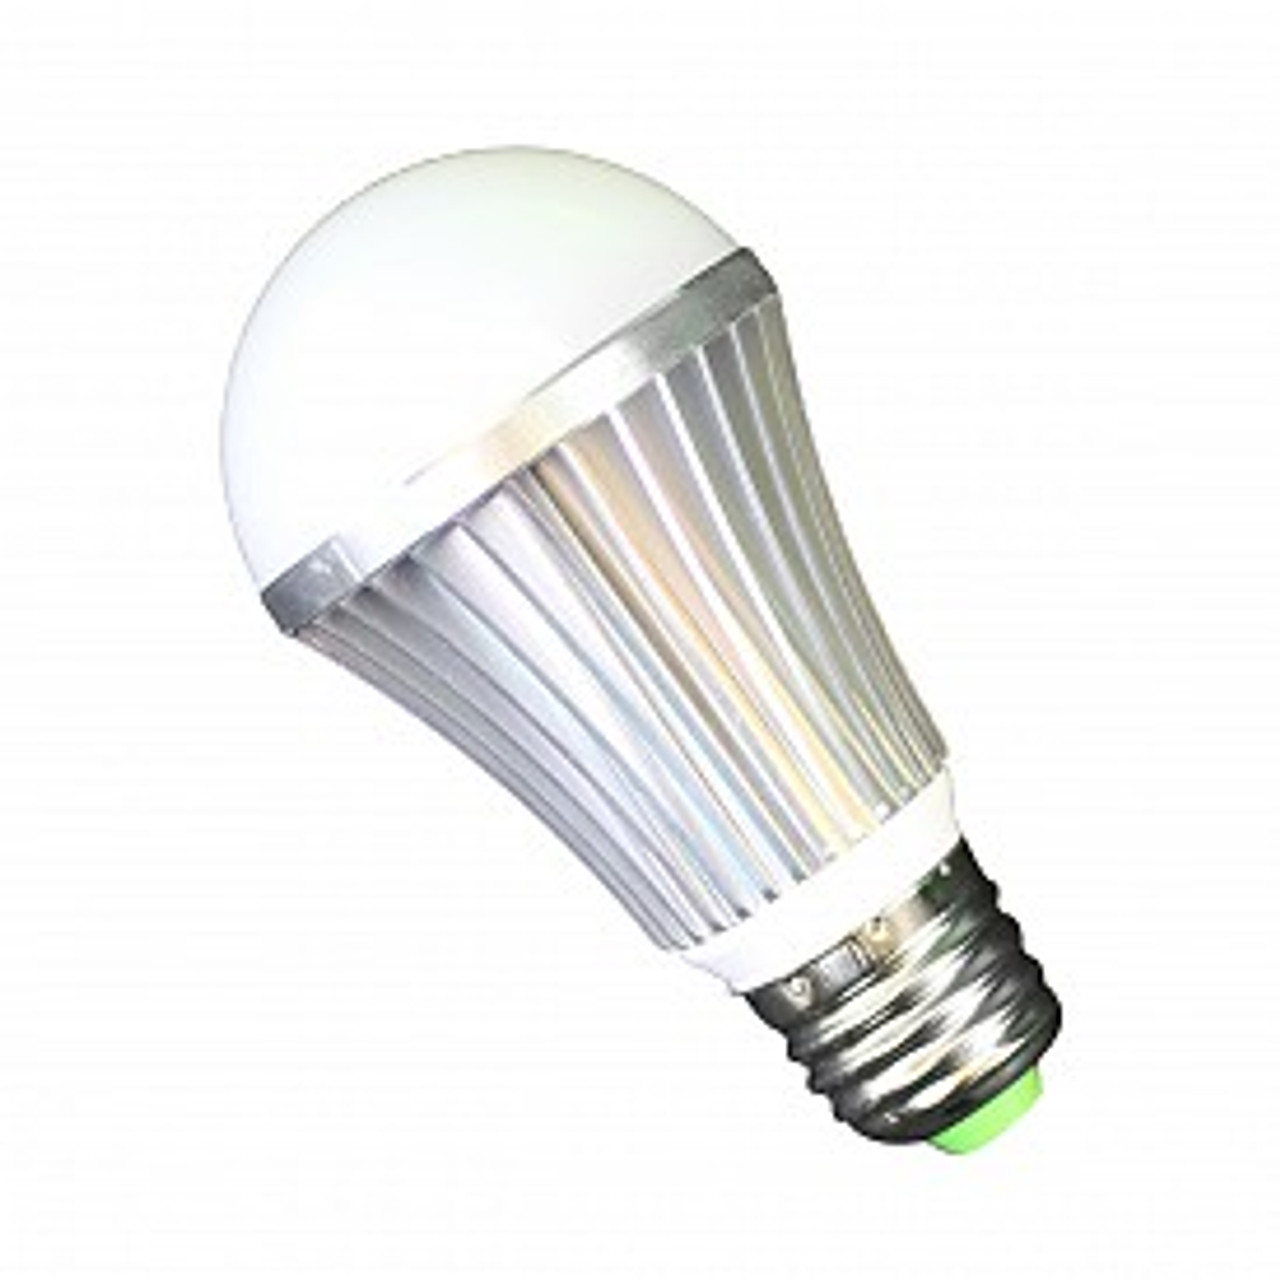 Illuminati Super Green 5W LED Night Light for 50.75 at Lightingandsupplies.com